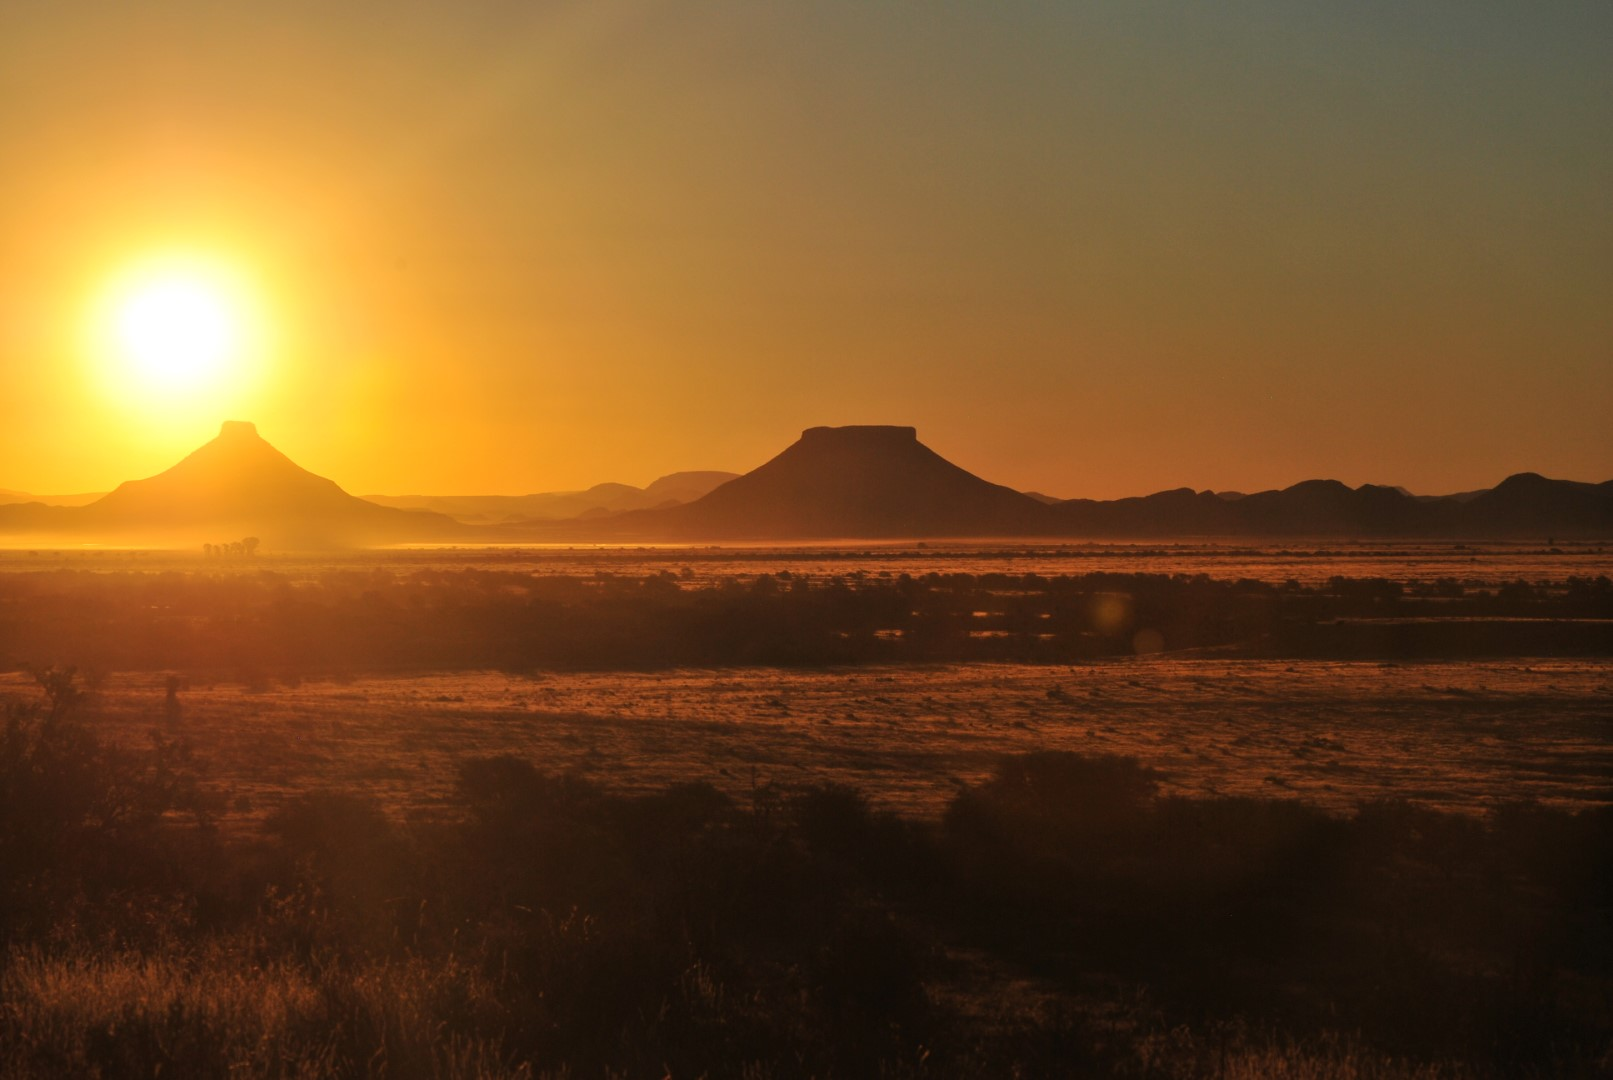 Dusty Sunset over mountains